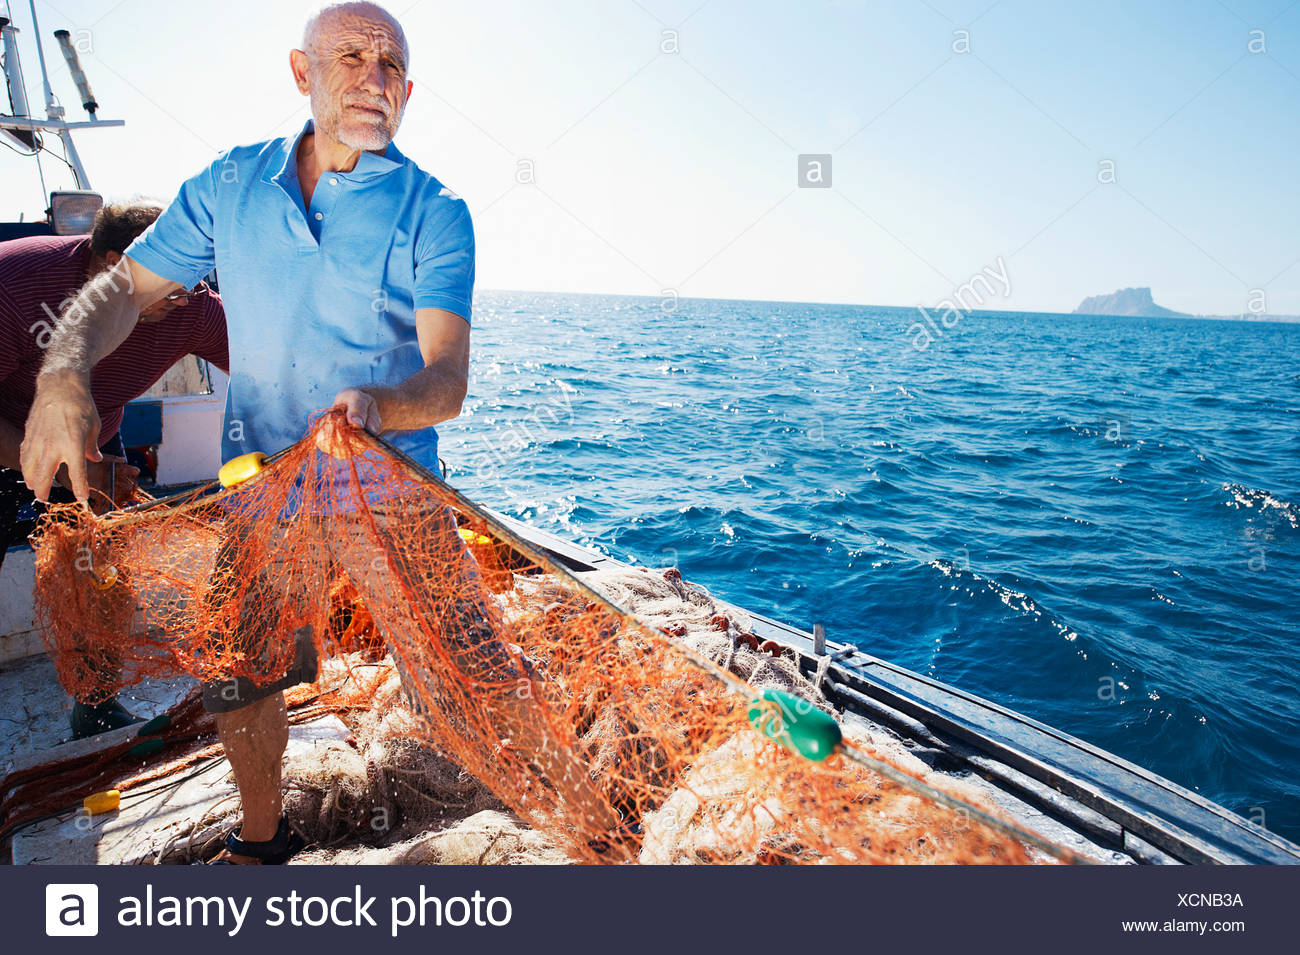 Fisherman on boat pulling in nets - Stock Image